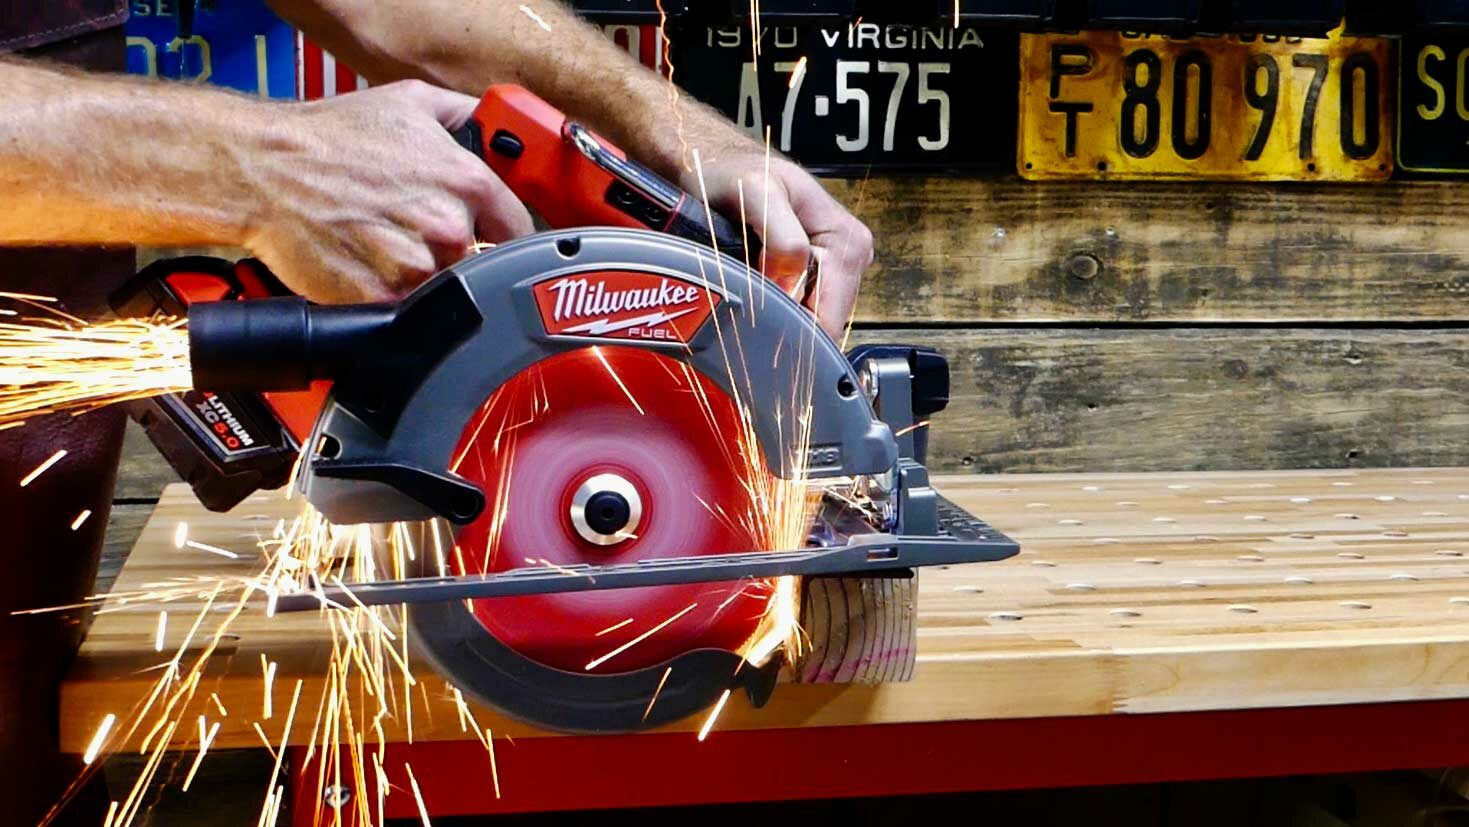 Is It The Circular Saw Or The Saw Blade?